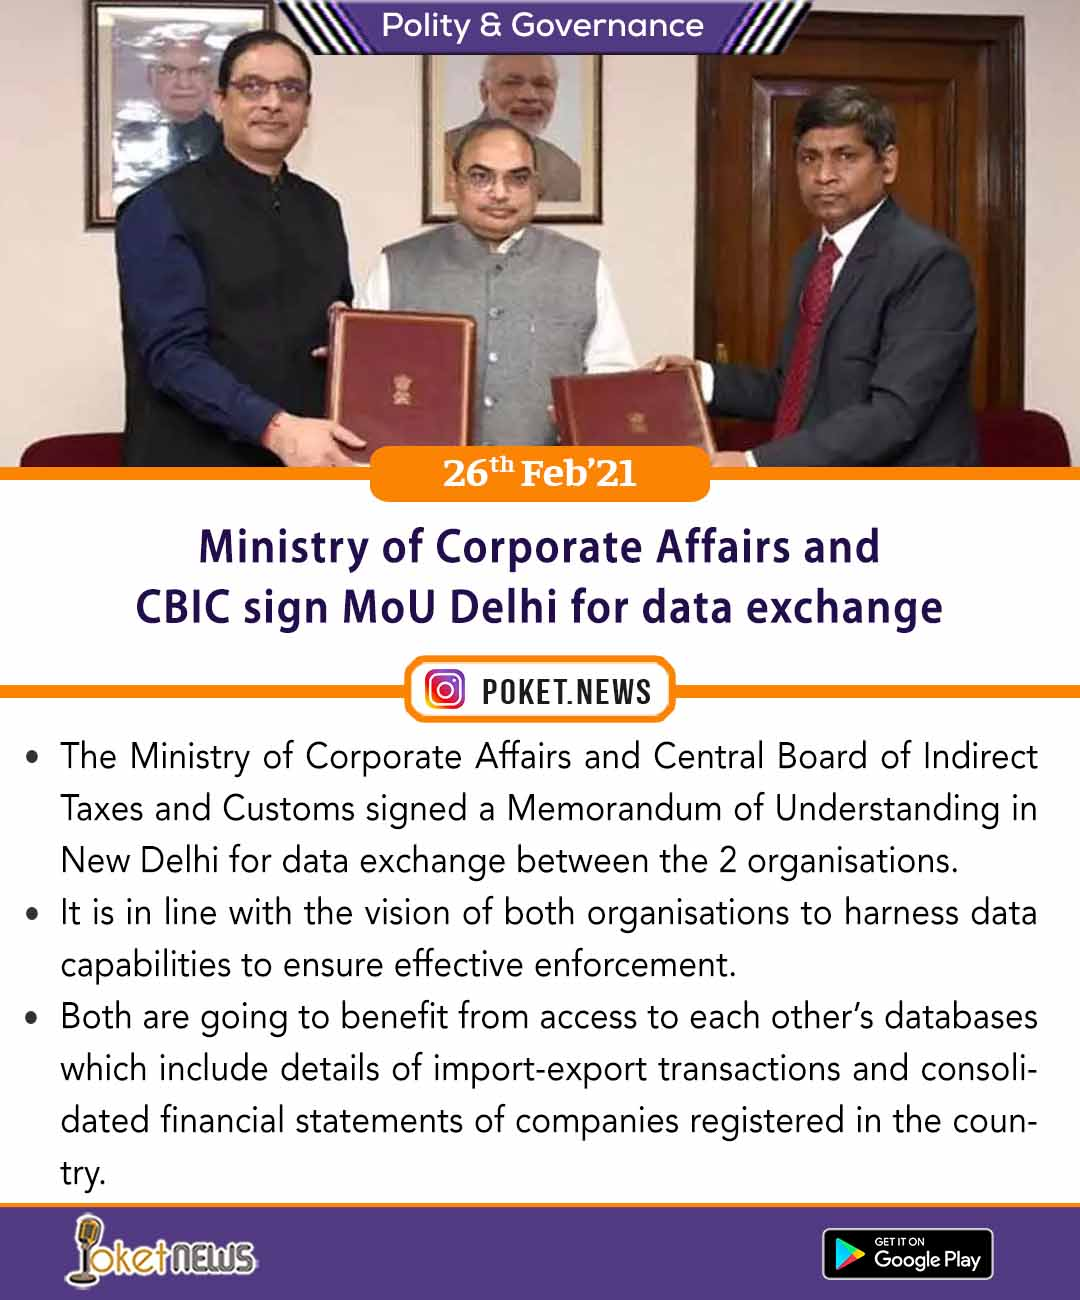 Ministry of Corporate Affairs and CBIC sign MoU Delhi for data exchange